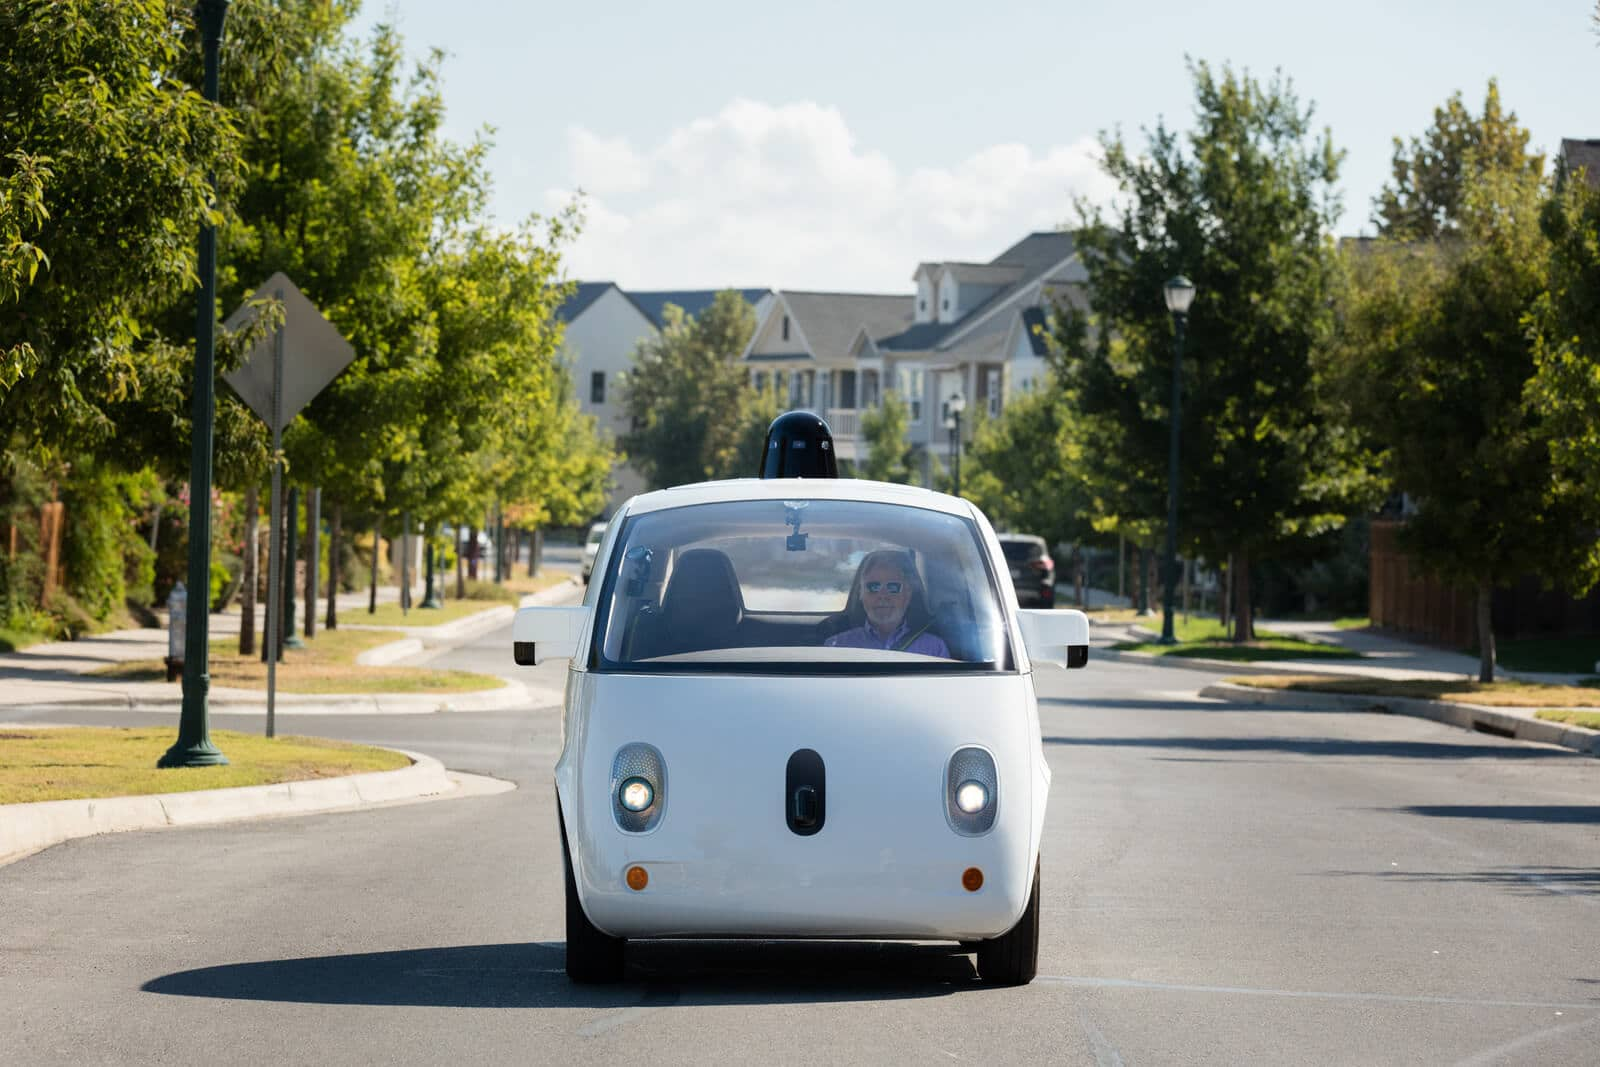 google-self-driving-car-imagine-waymo